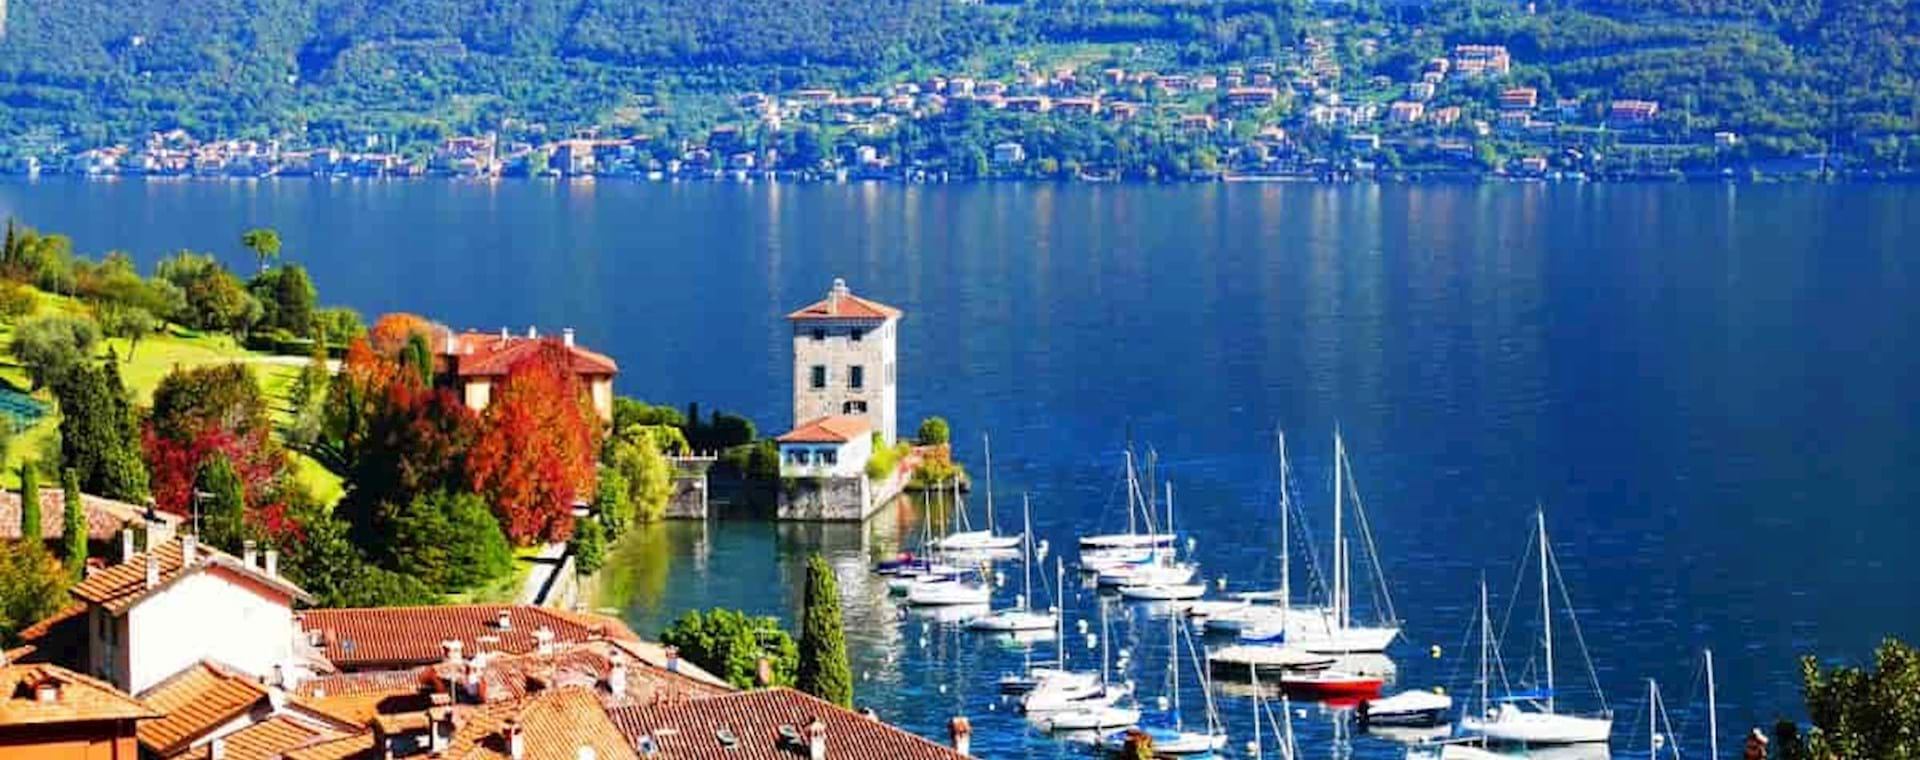 Stunning view of the Como Lake